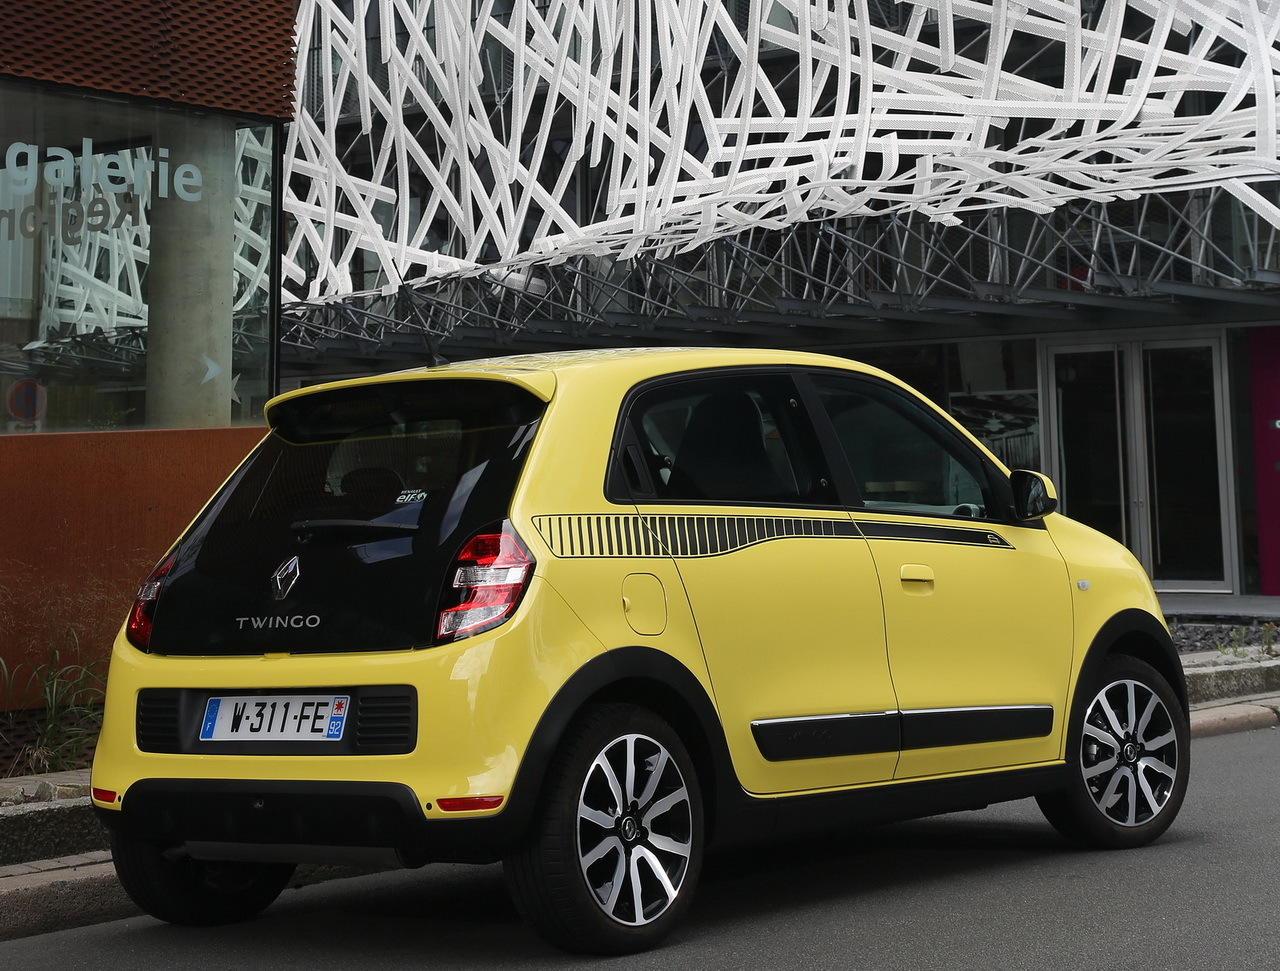 prix renault twingo 2014 les tarifs d butent 10 800 euros photo 1 l 39 argus. Black Bedroom Furniture Sets. Home Design Ideas